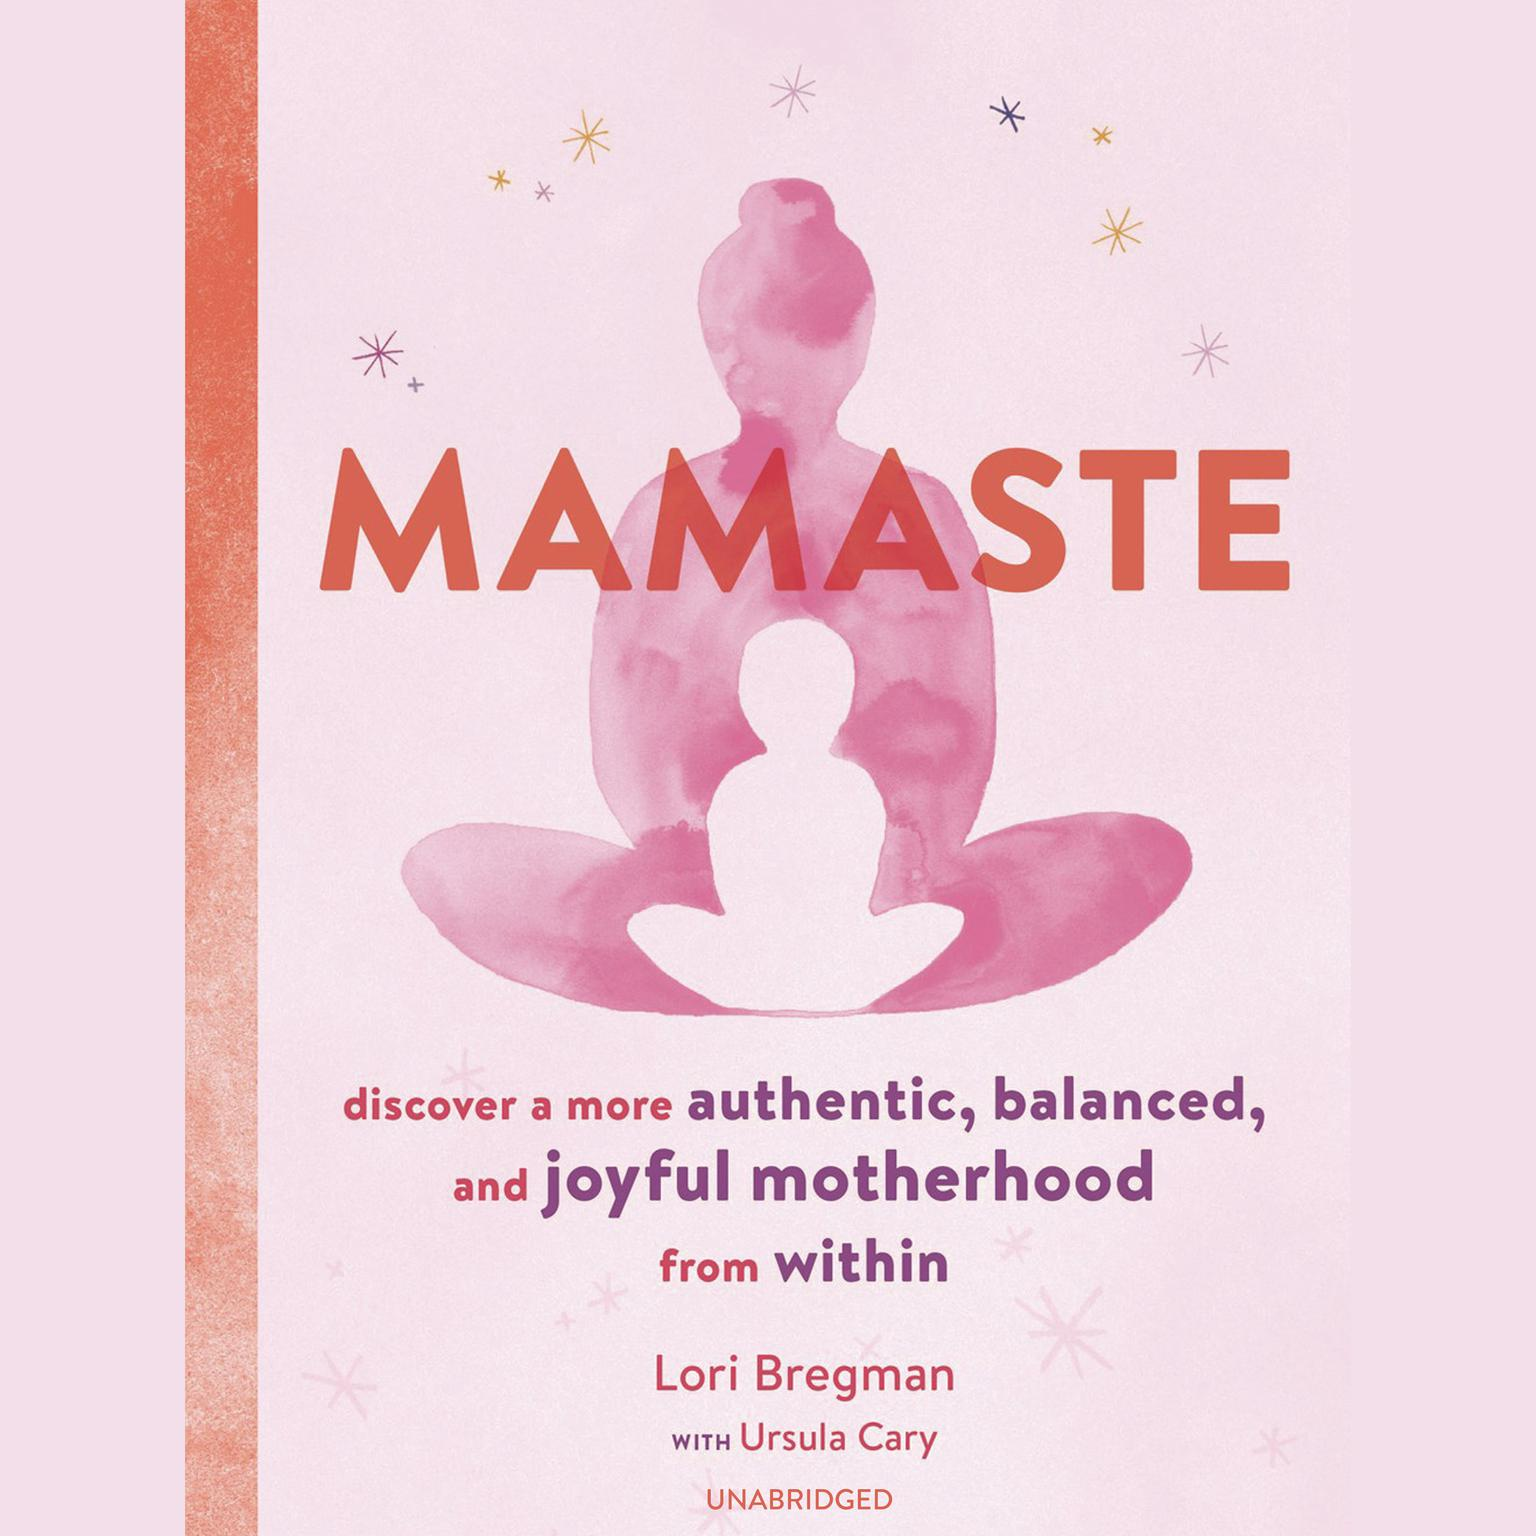 Mamaste: Discover a More Authentic, Balanced, and Joyful Motherhood from Within Audiobook, by Lori Bregman